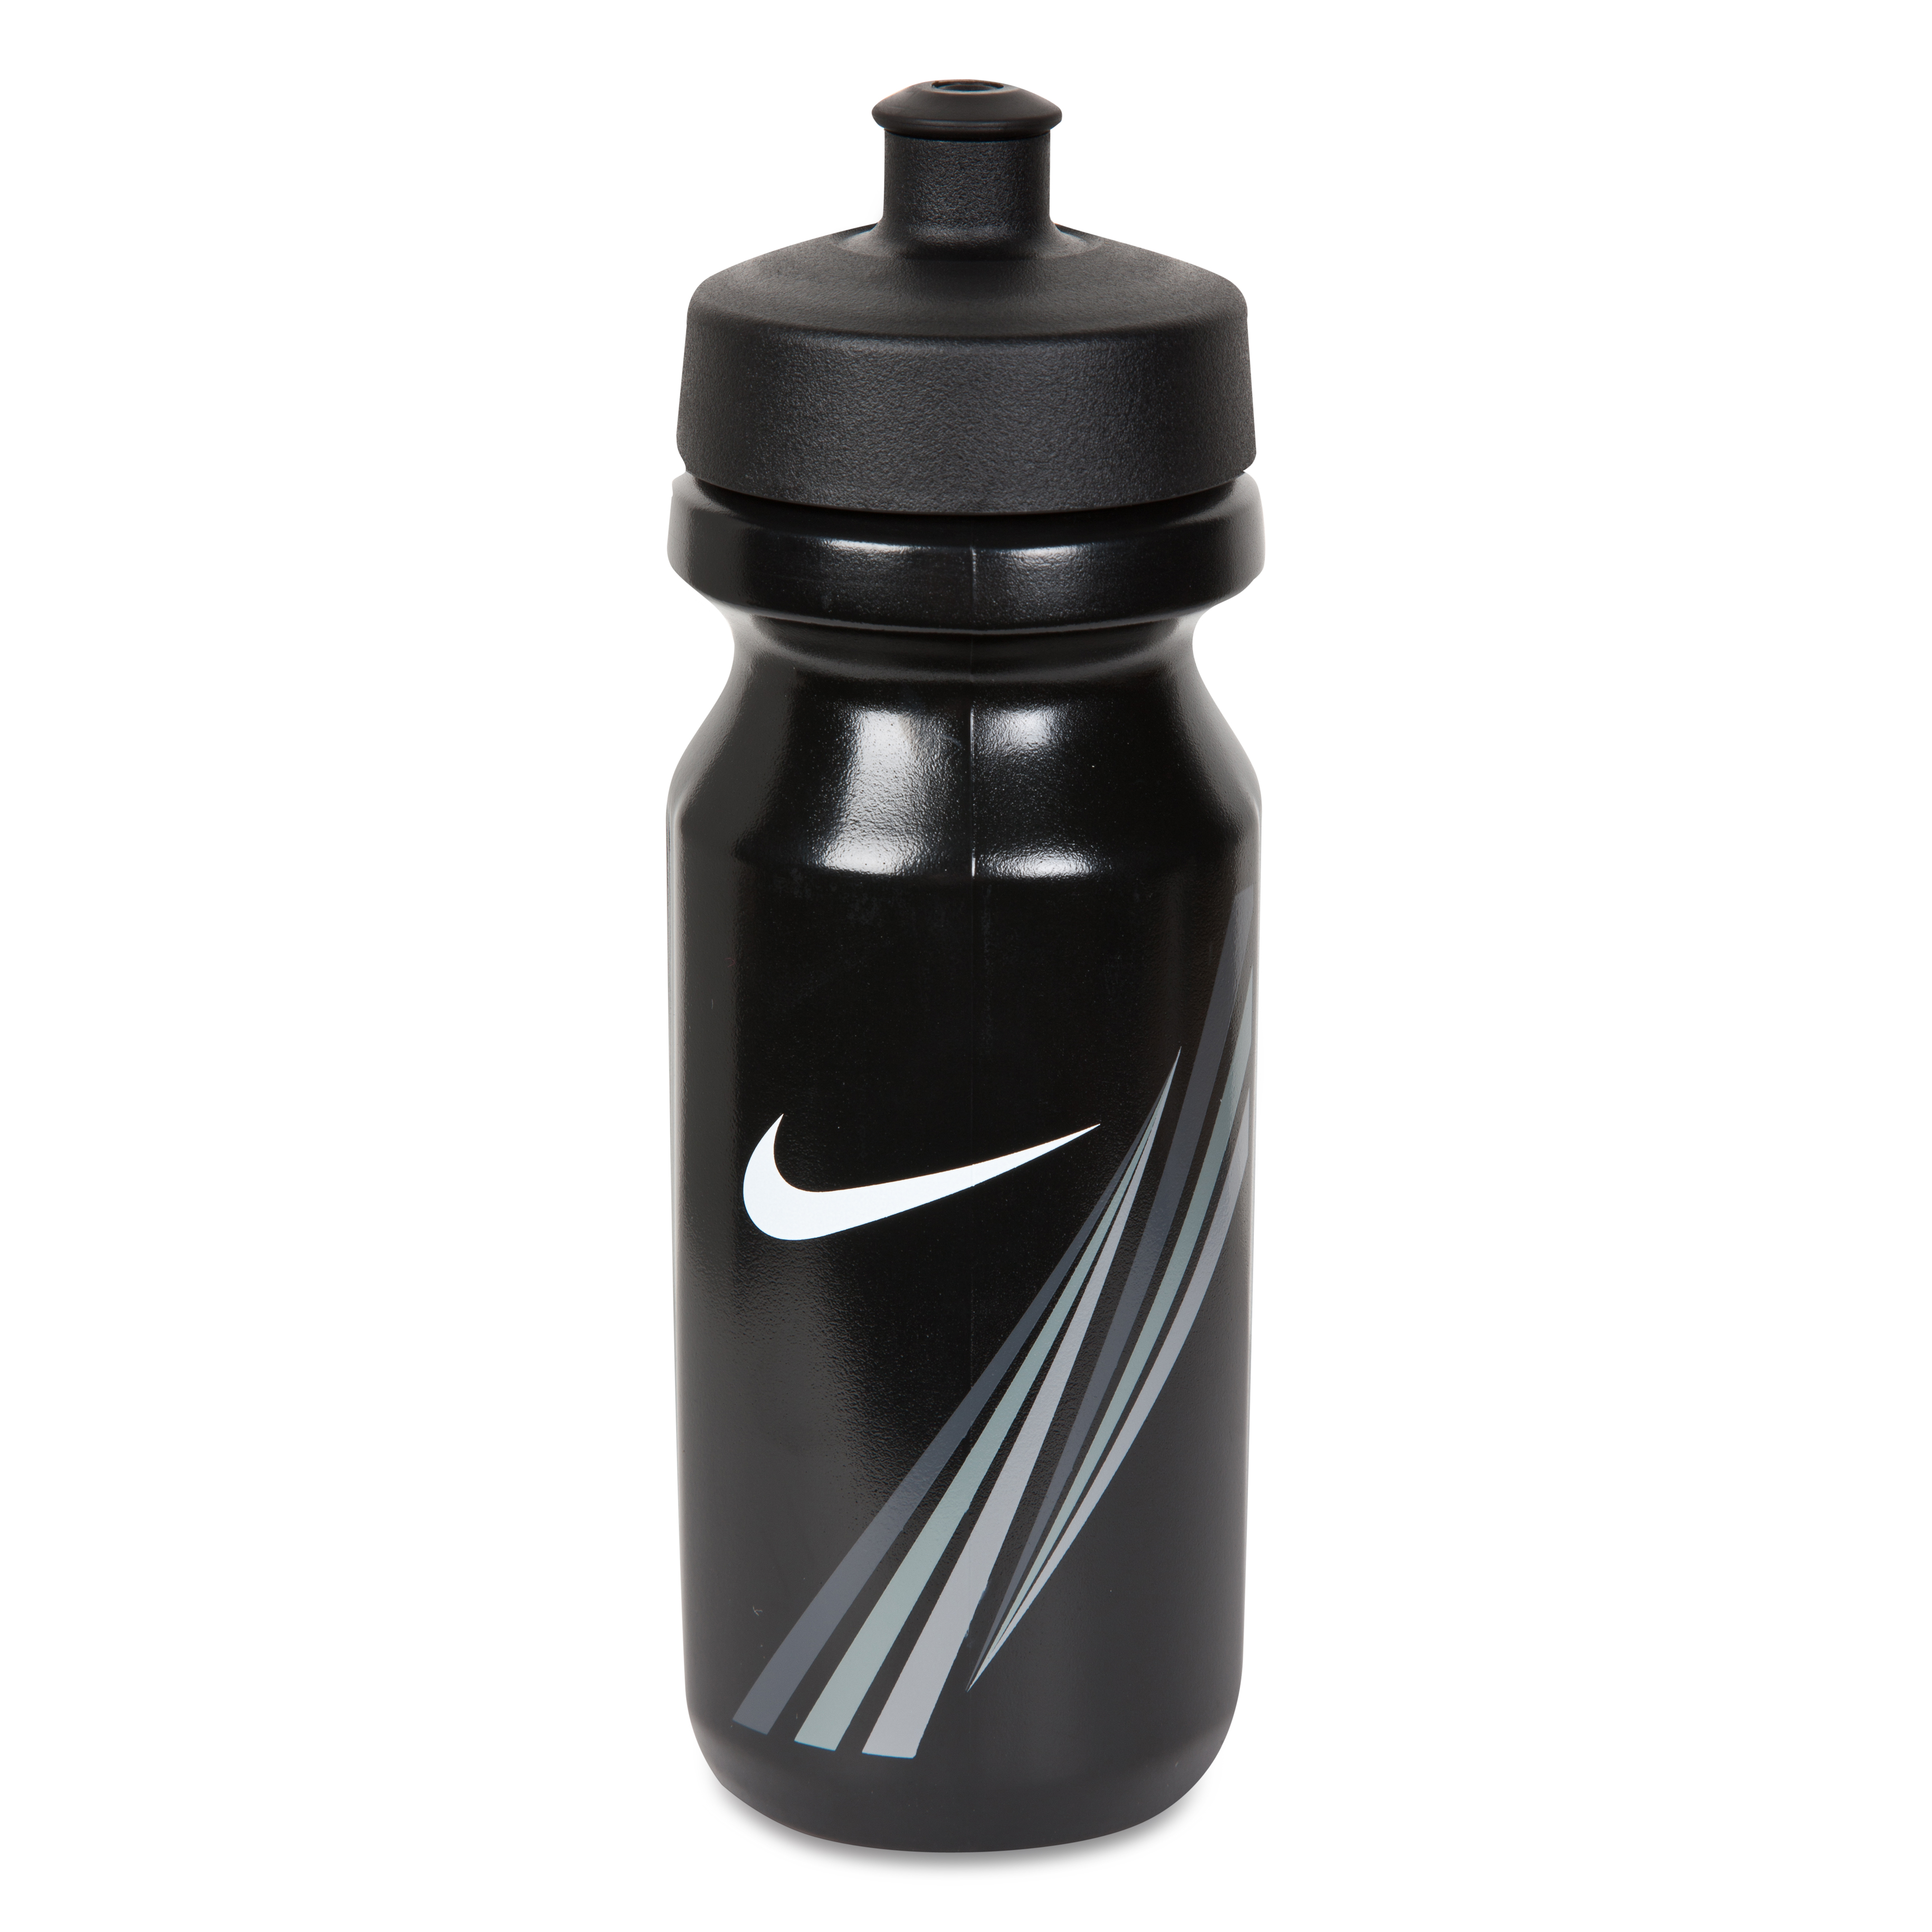 Nike Big Mouth Water Bottle - Black/Med Grey/Black